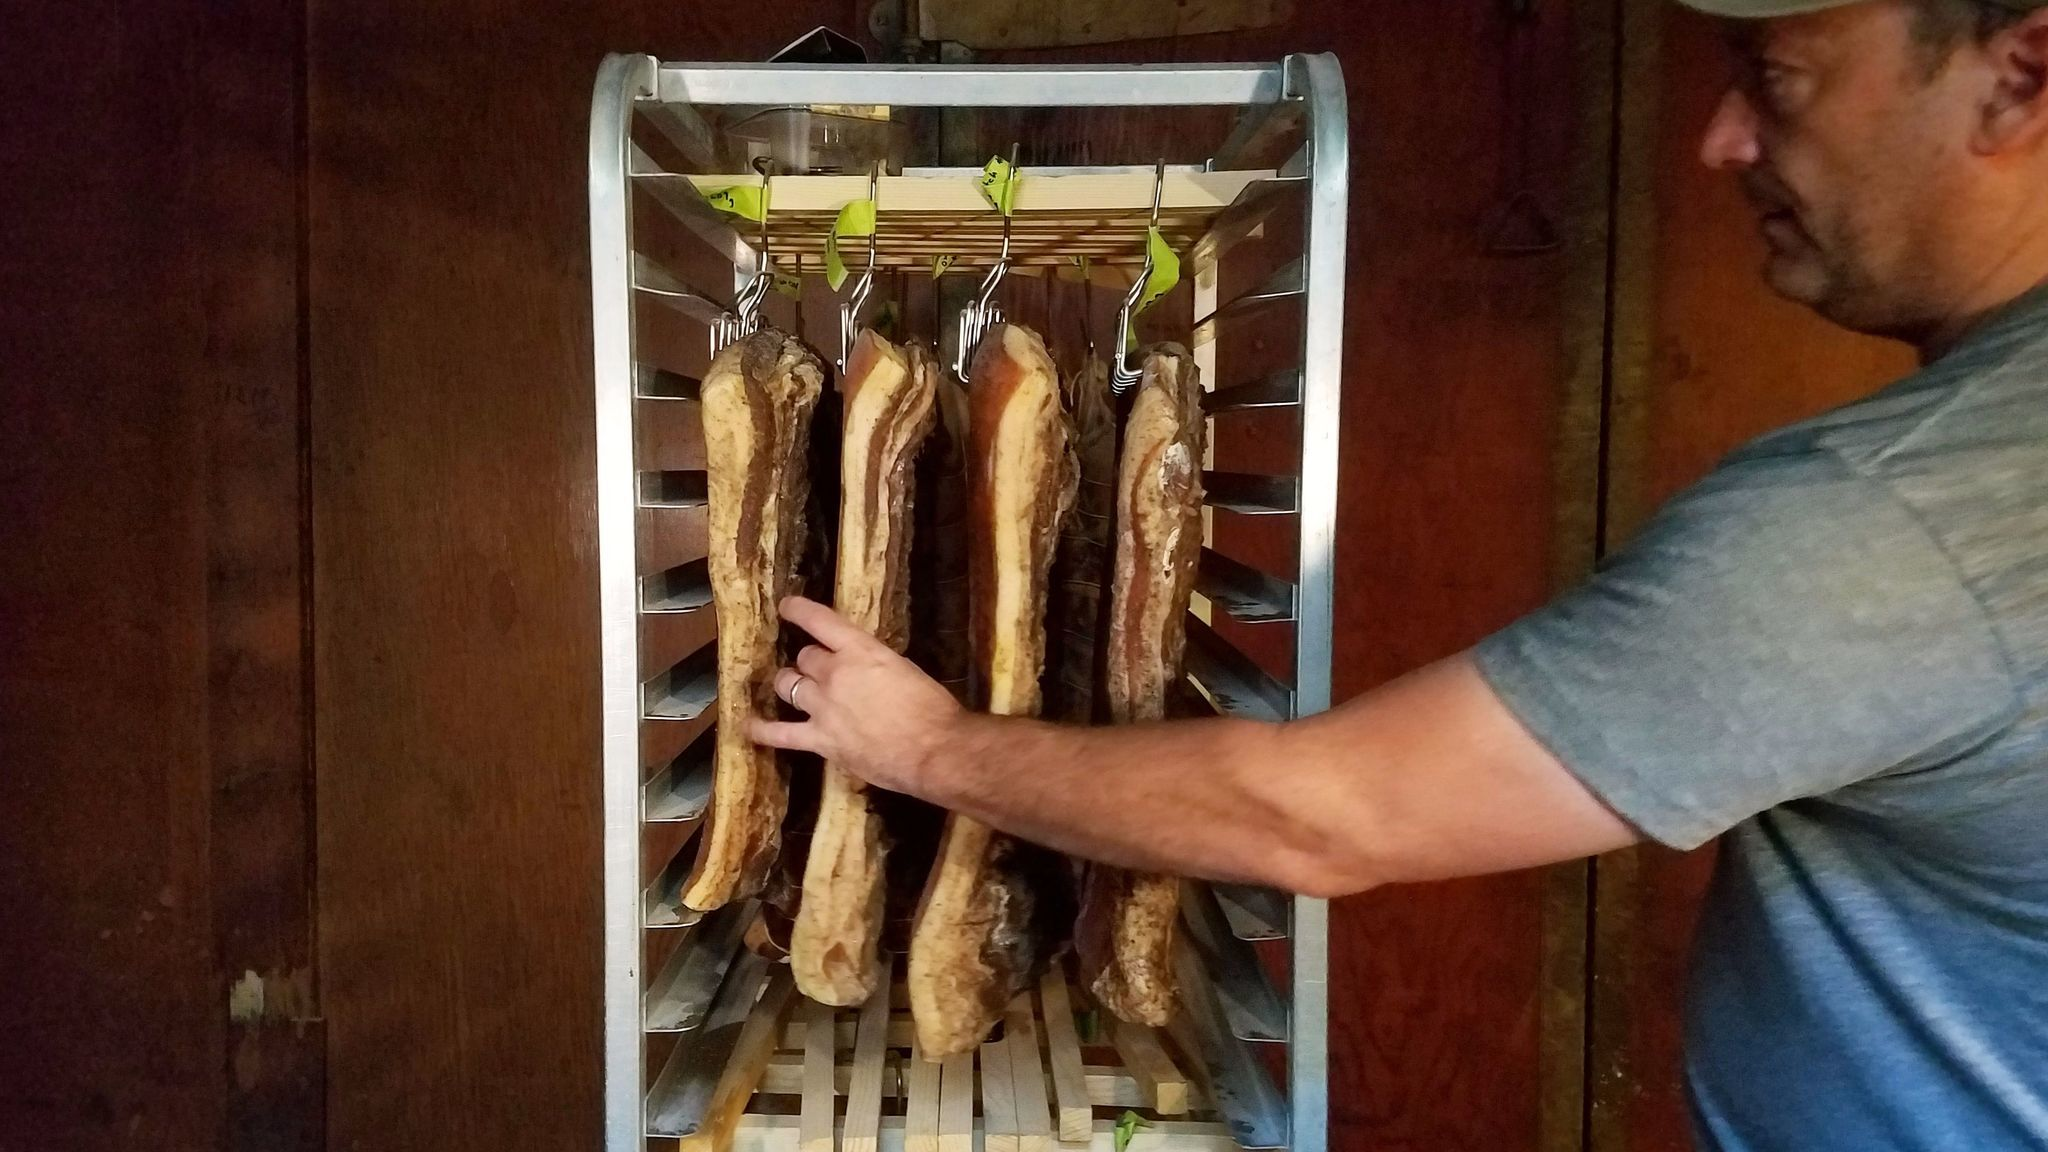 Chef Steve Samson checks in on some meat in the butcher locker at Rossoblu.